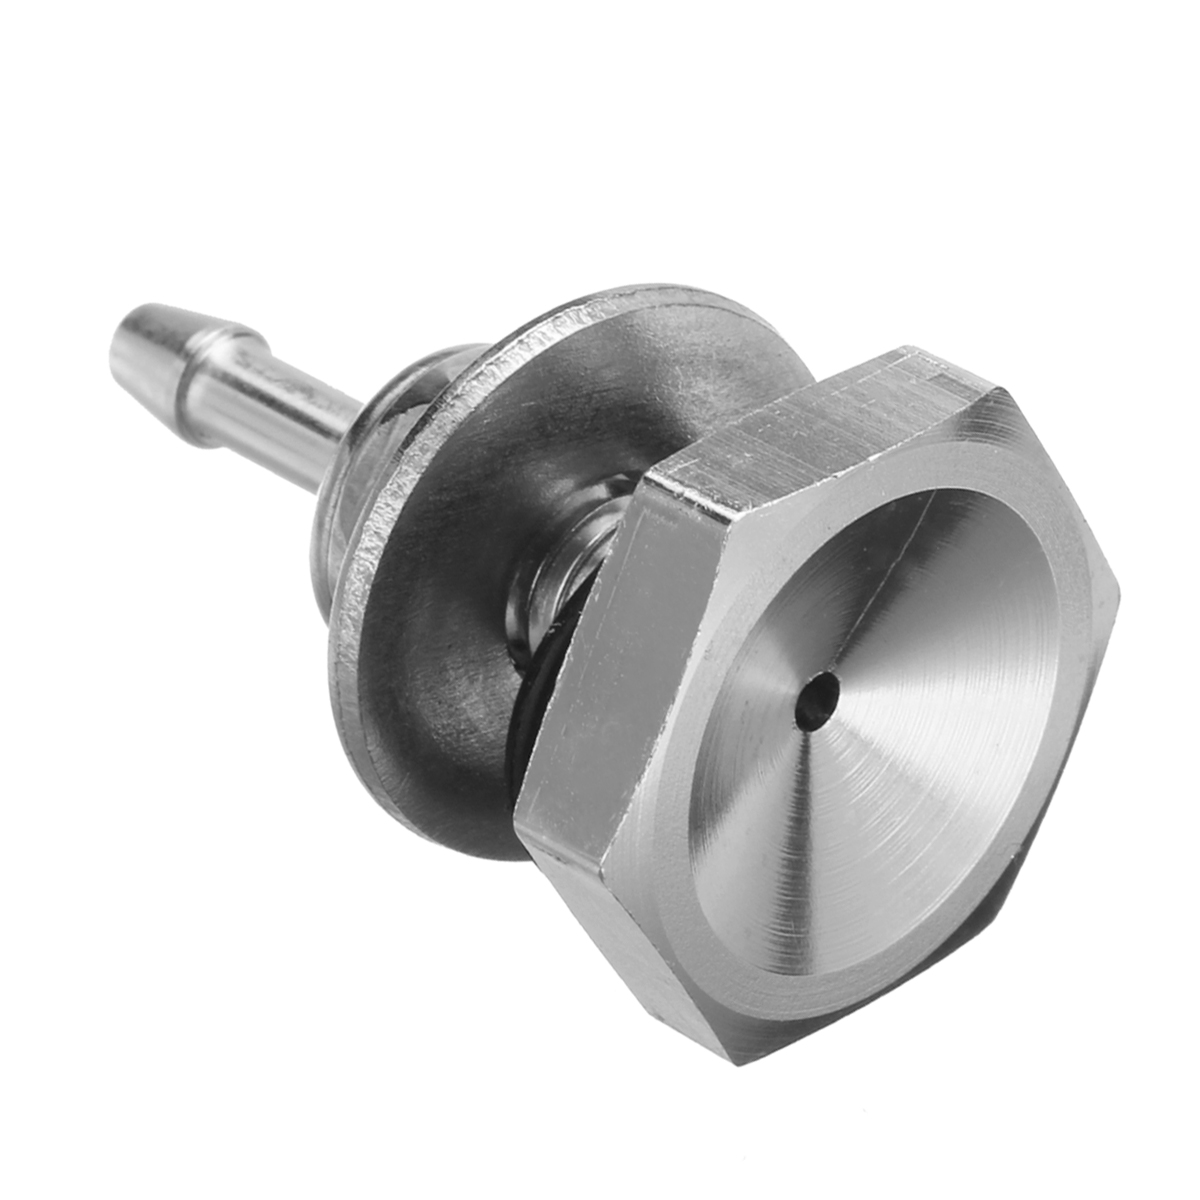 Car Universal Turbocharger Silicone Boost Pipe Nipple Turbo Vacuum Gauge Fitting